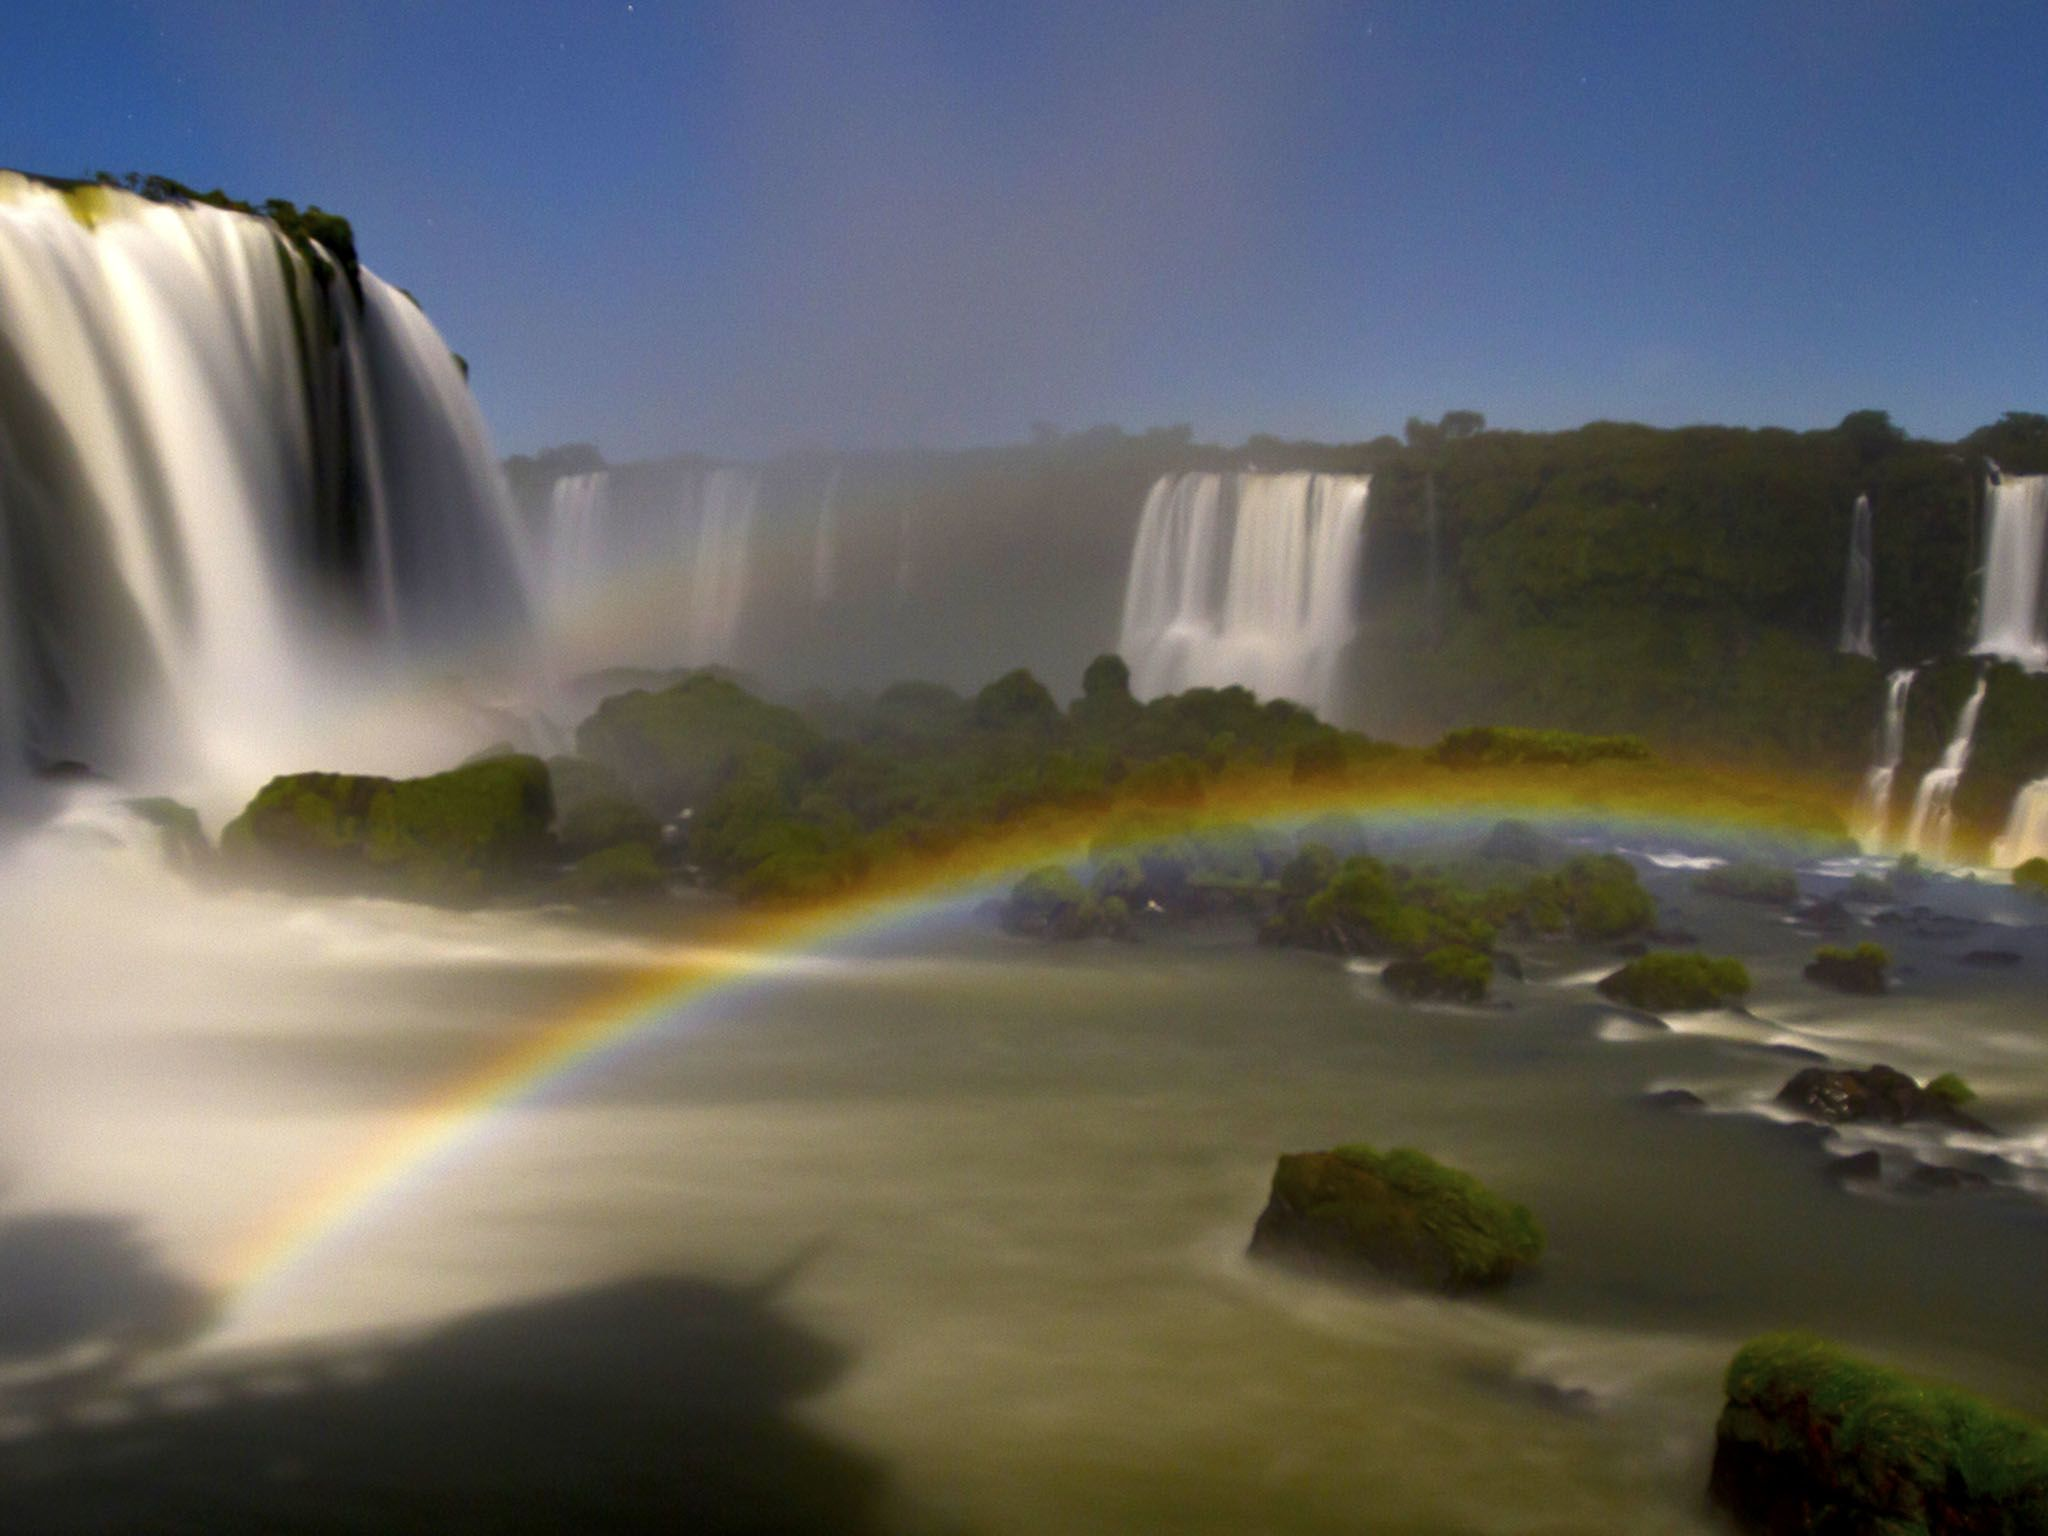 Iguazu Falls with rainbow in the mist. This image is from River in the Sky. [Photo of the day - دسامبر 2016]